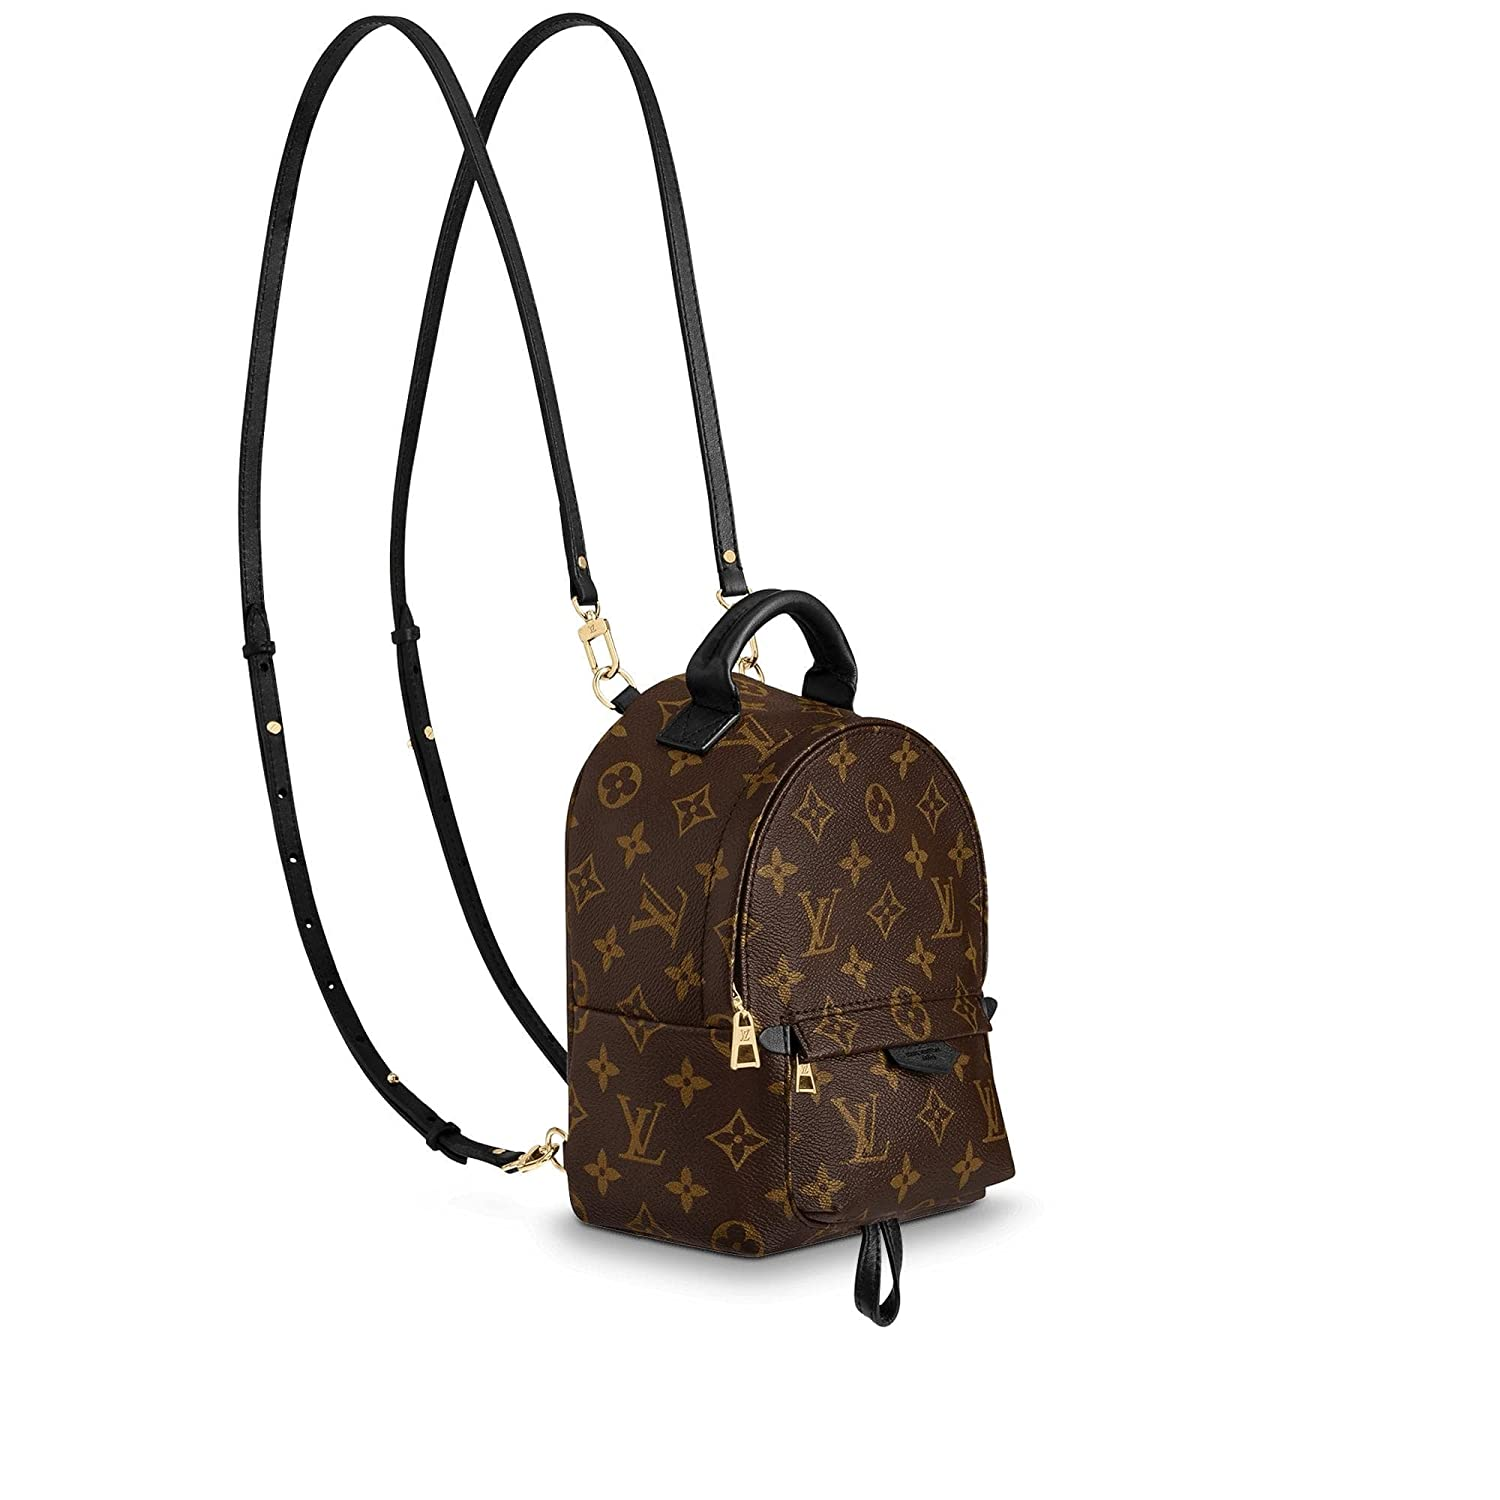 cdf681d931da6 Palm Springs Style Canvas Monogram MINI Backpack with Adjustable Straps  Perfect for Men Women Girls Boys: Amazon.ca: Shoes & Handbags